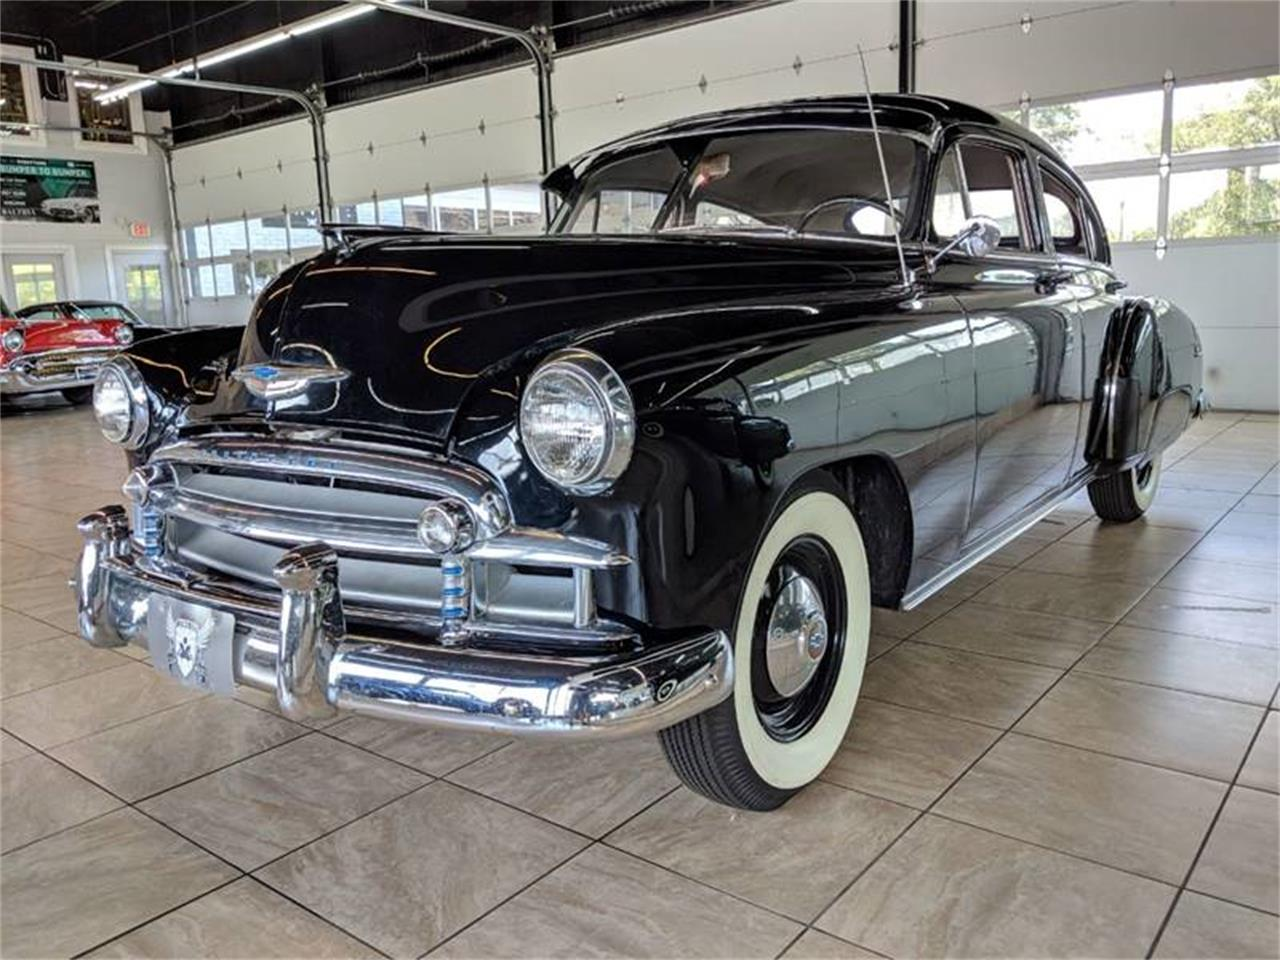 1950 Chevrolet Fleetline for sale in St. Charles, IL – photo 2